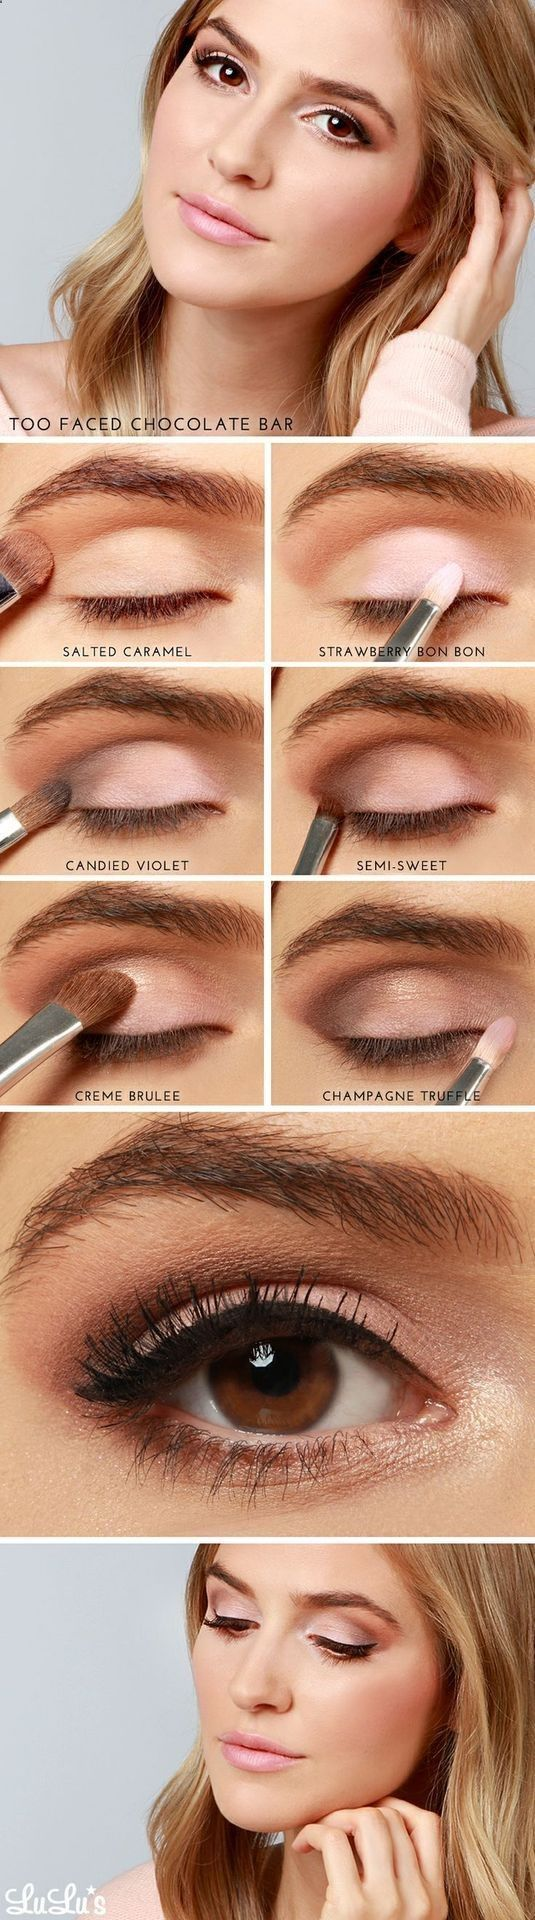 A Way to Make Your Eye Shadows Pop up http://pinmakeuptips.com/a-way-to-make-your-eye-shadows-pop-up/